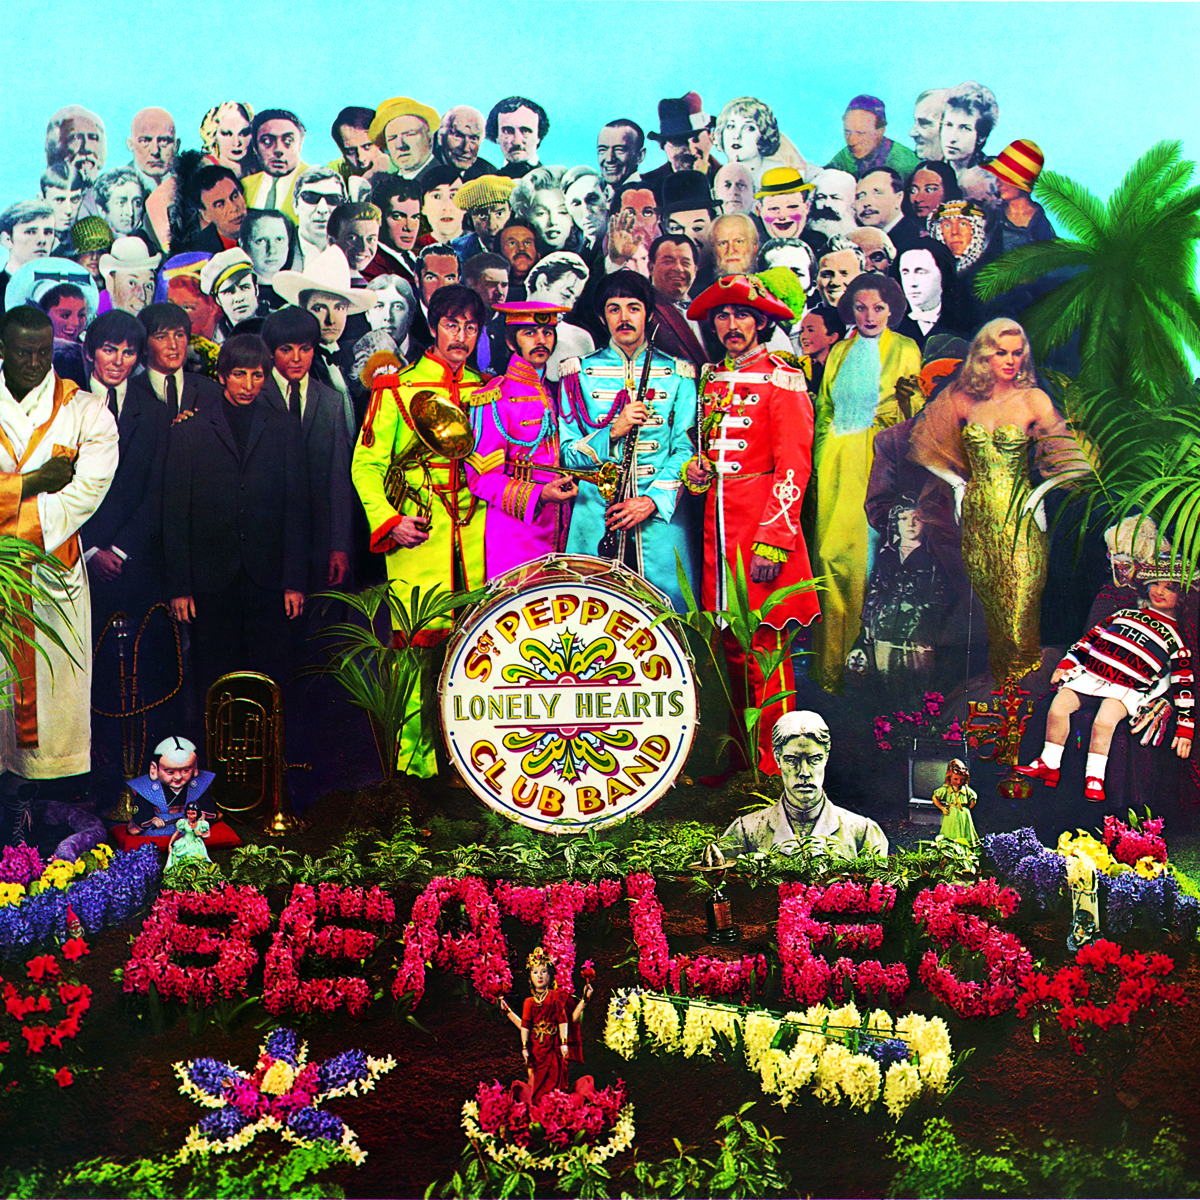 The Beatles Sgt. Peppers Lonely Hearts Club Band Hi Res Album Cover